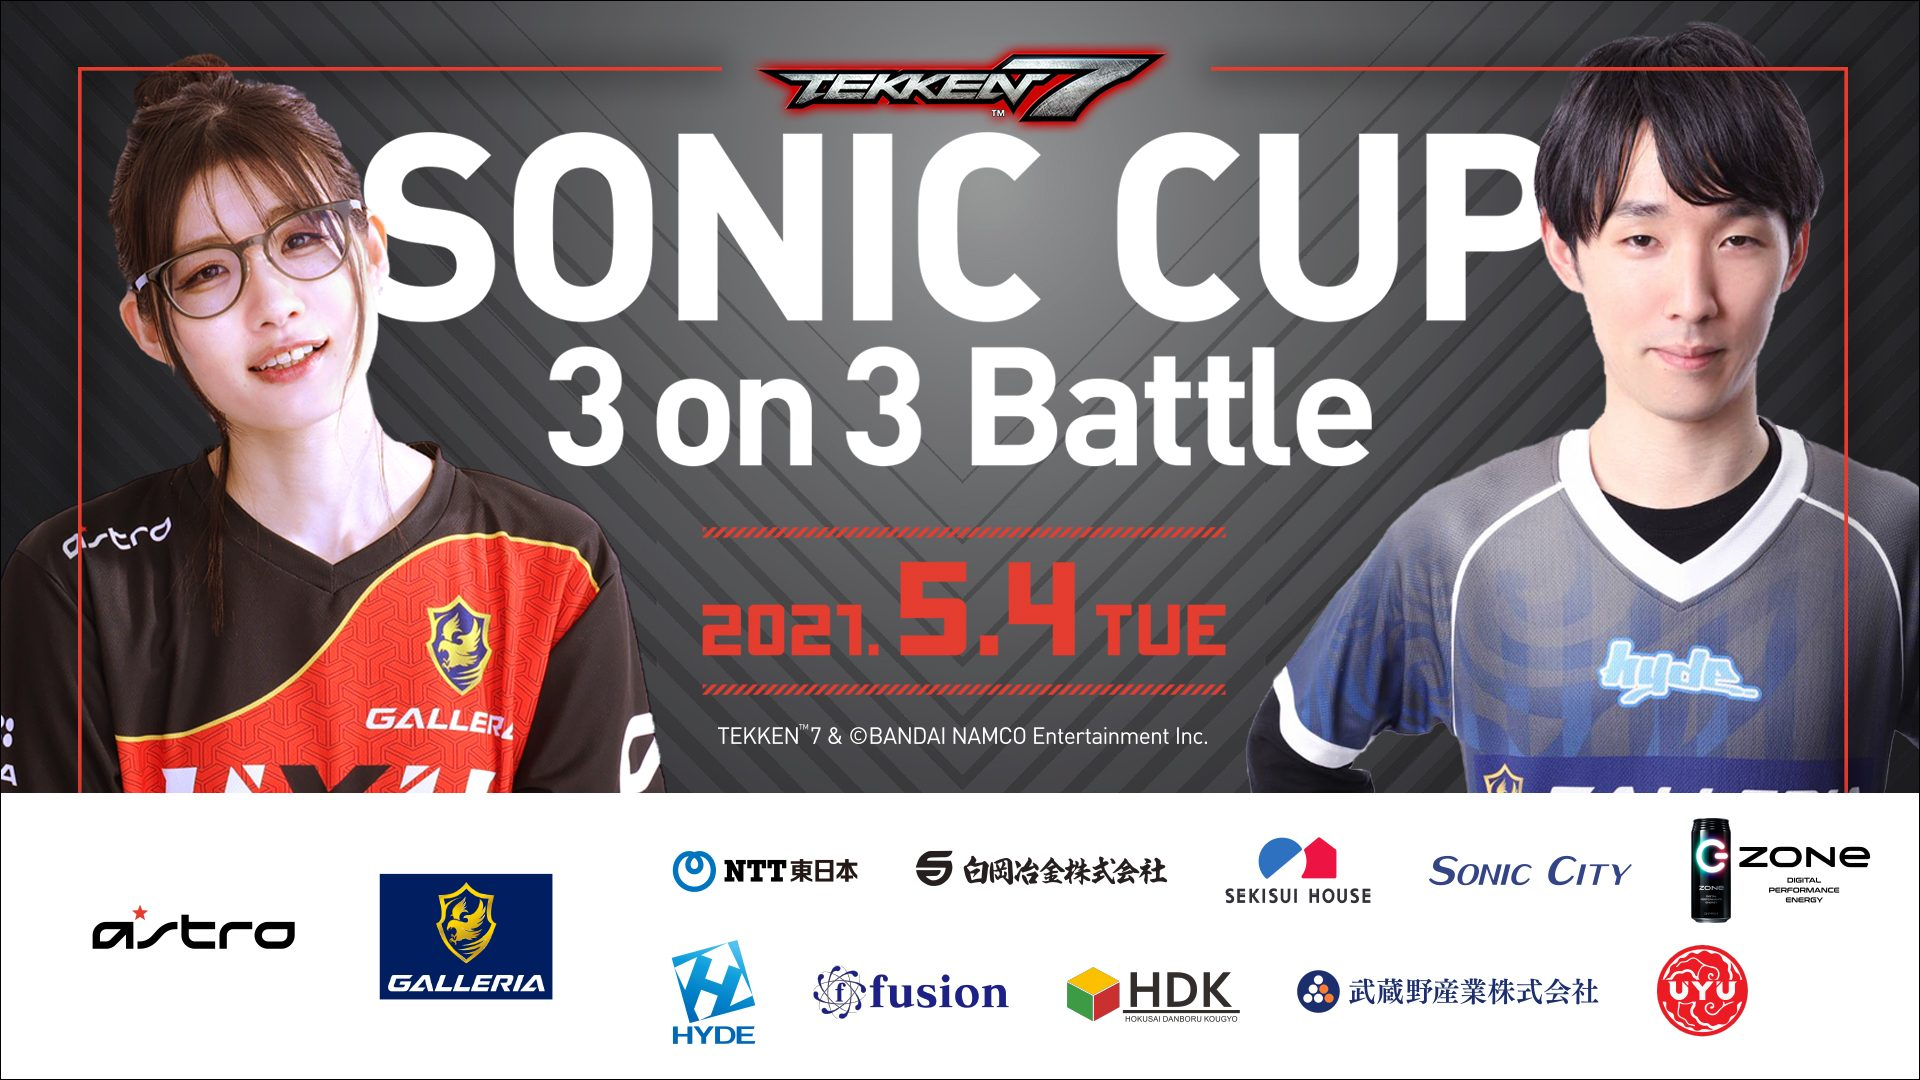 SONIC CUP 3on3 Battle